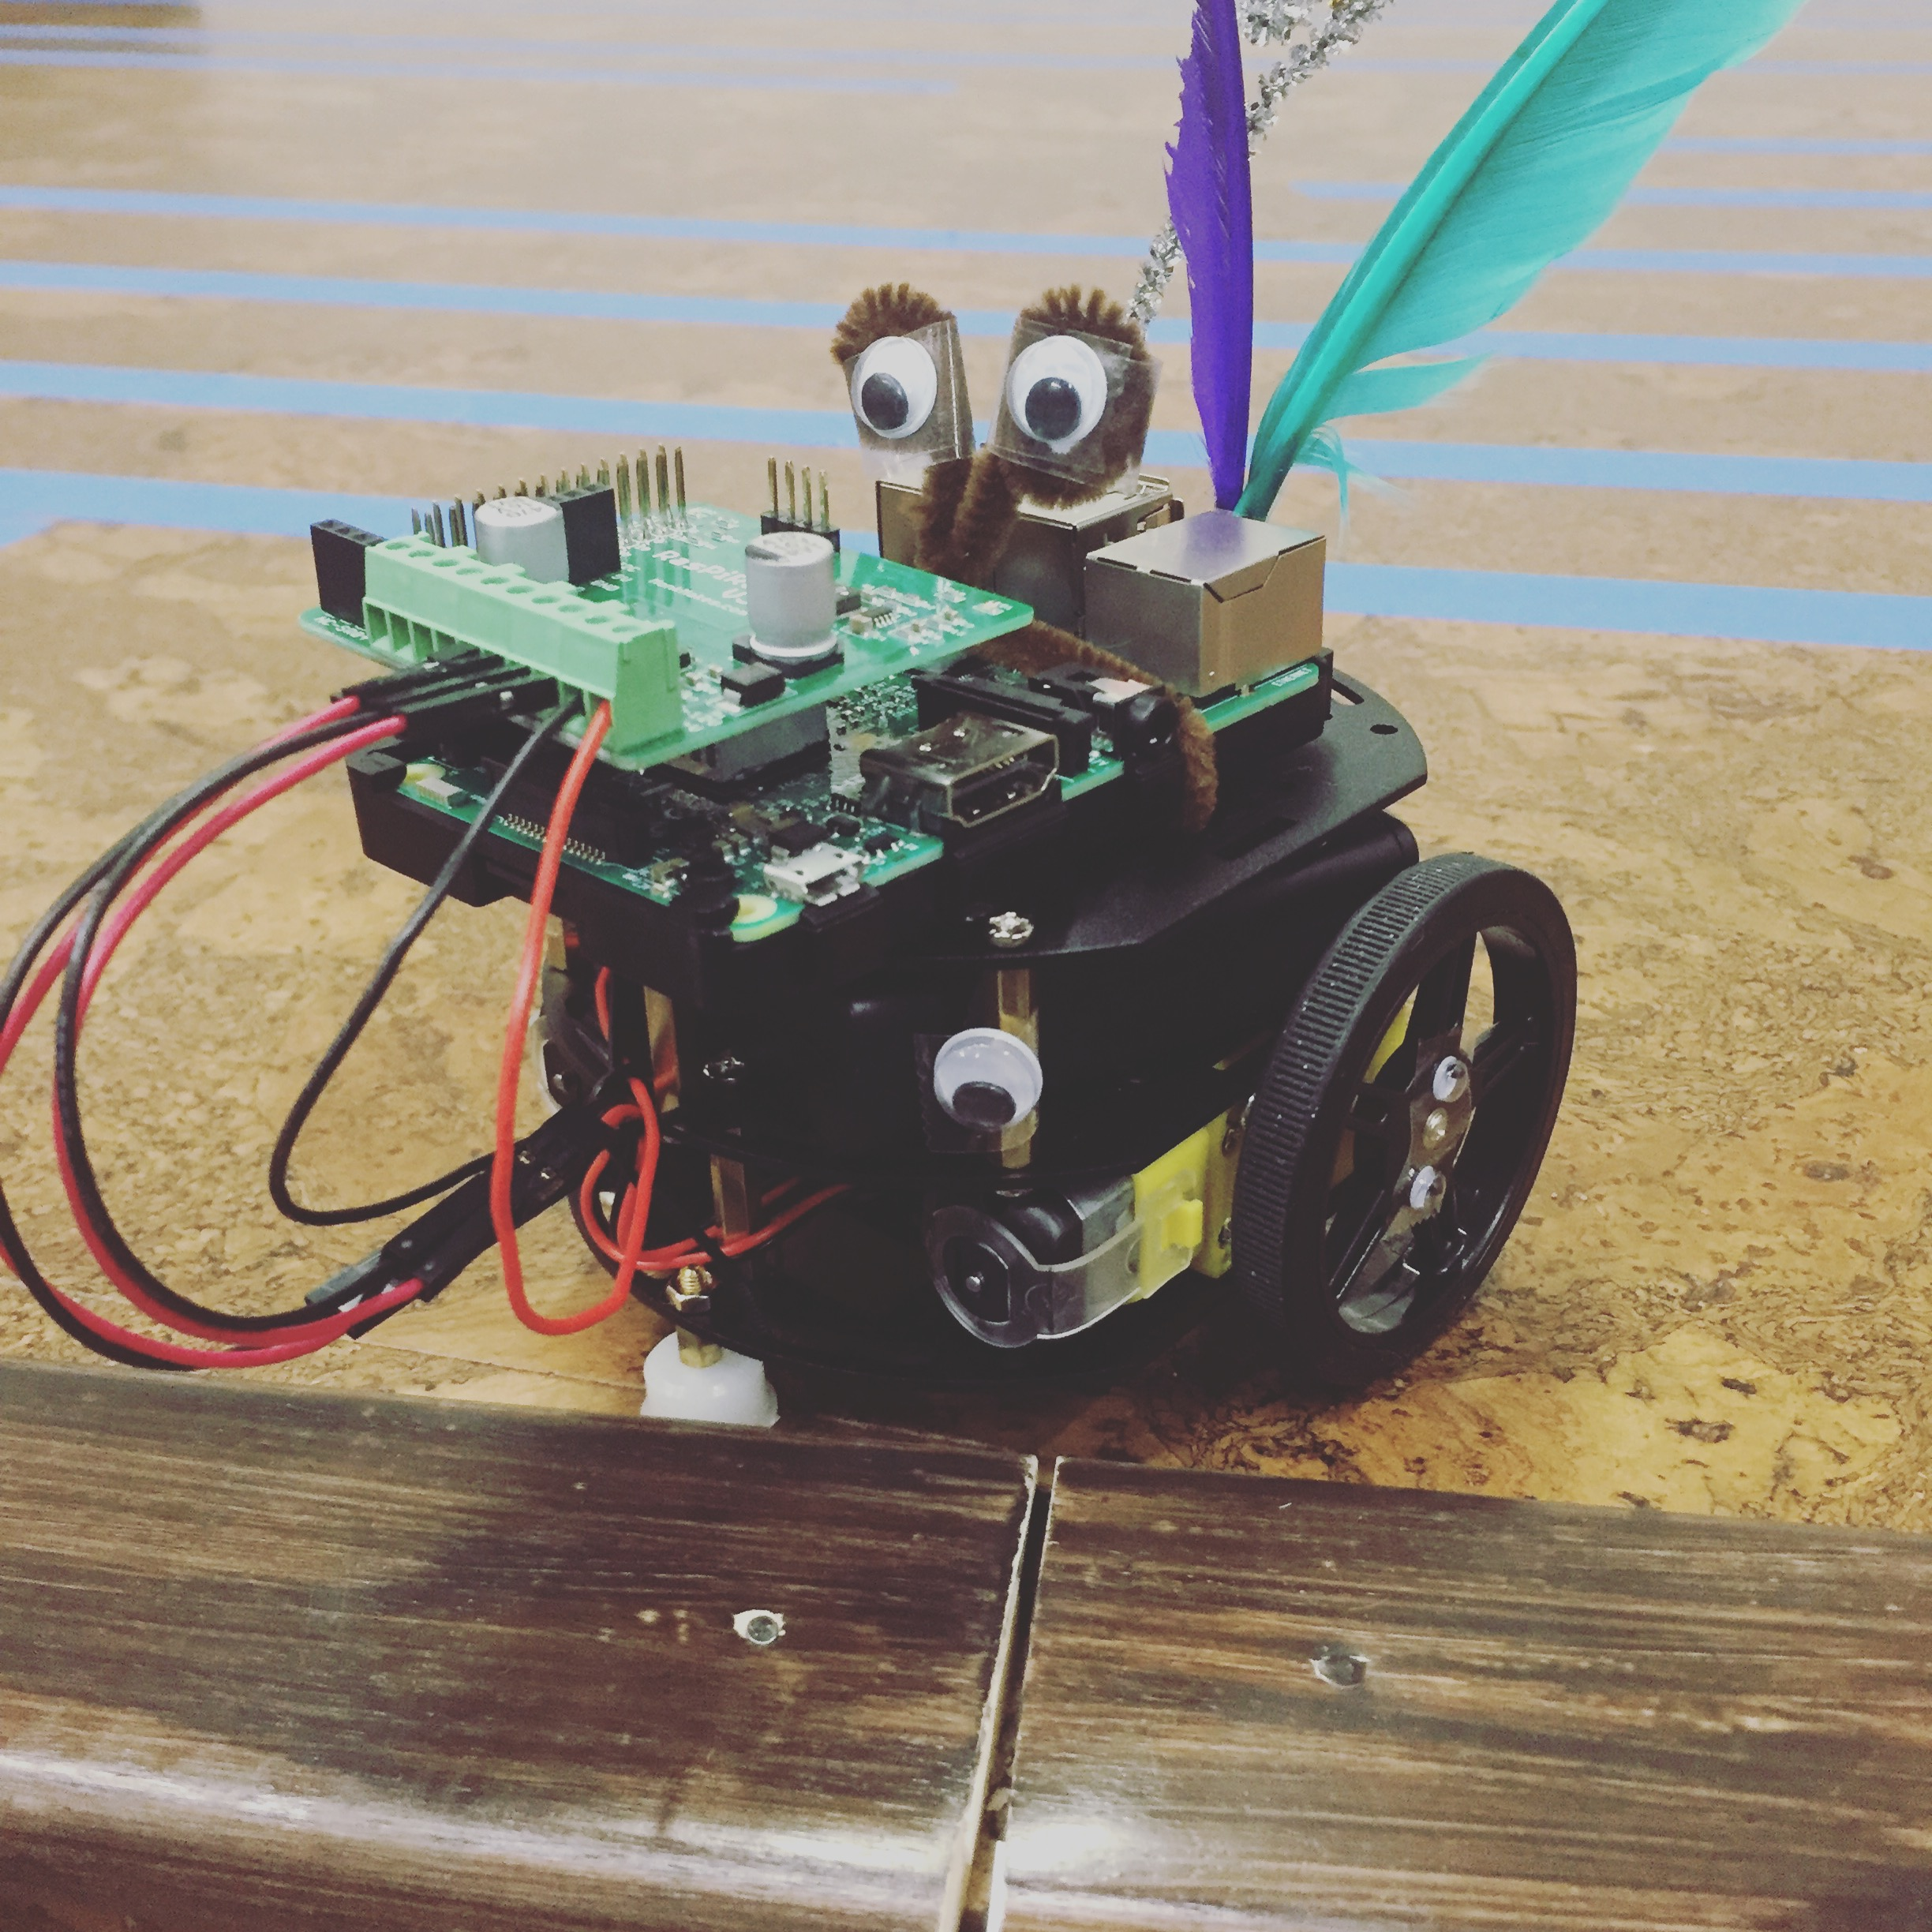 This Googley-Eyed Wonder Robot Car   was made by super inspiring Raspberry Pi Hackathon participants. It fills us with bubbles of joy, hope of good things to come, and proof that good things are already here.